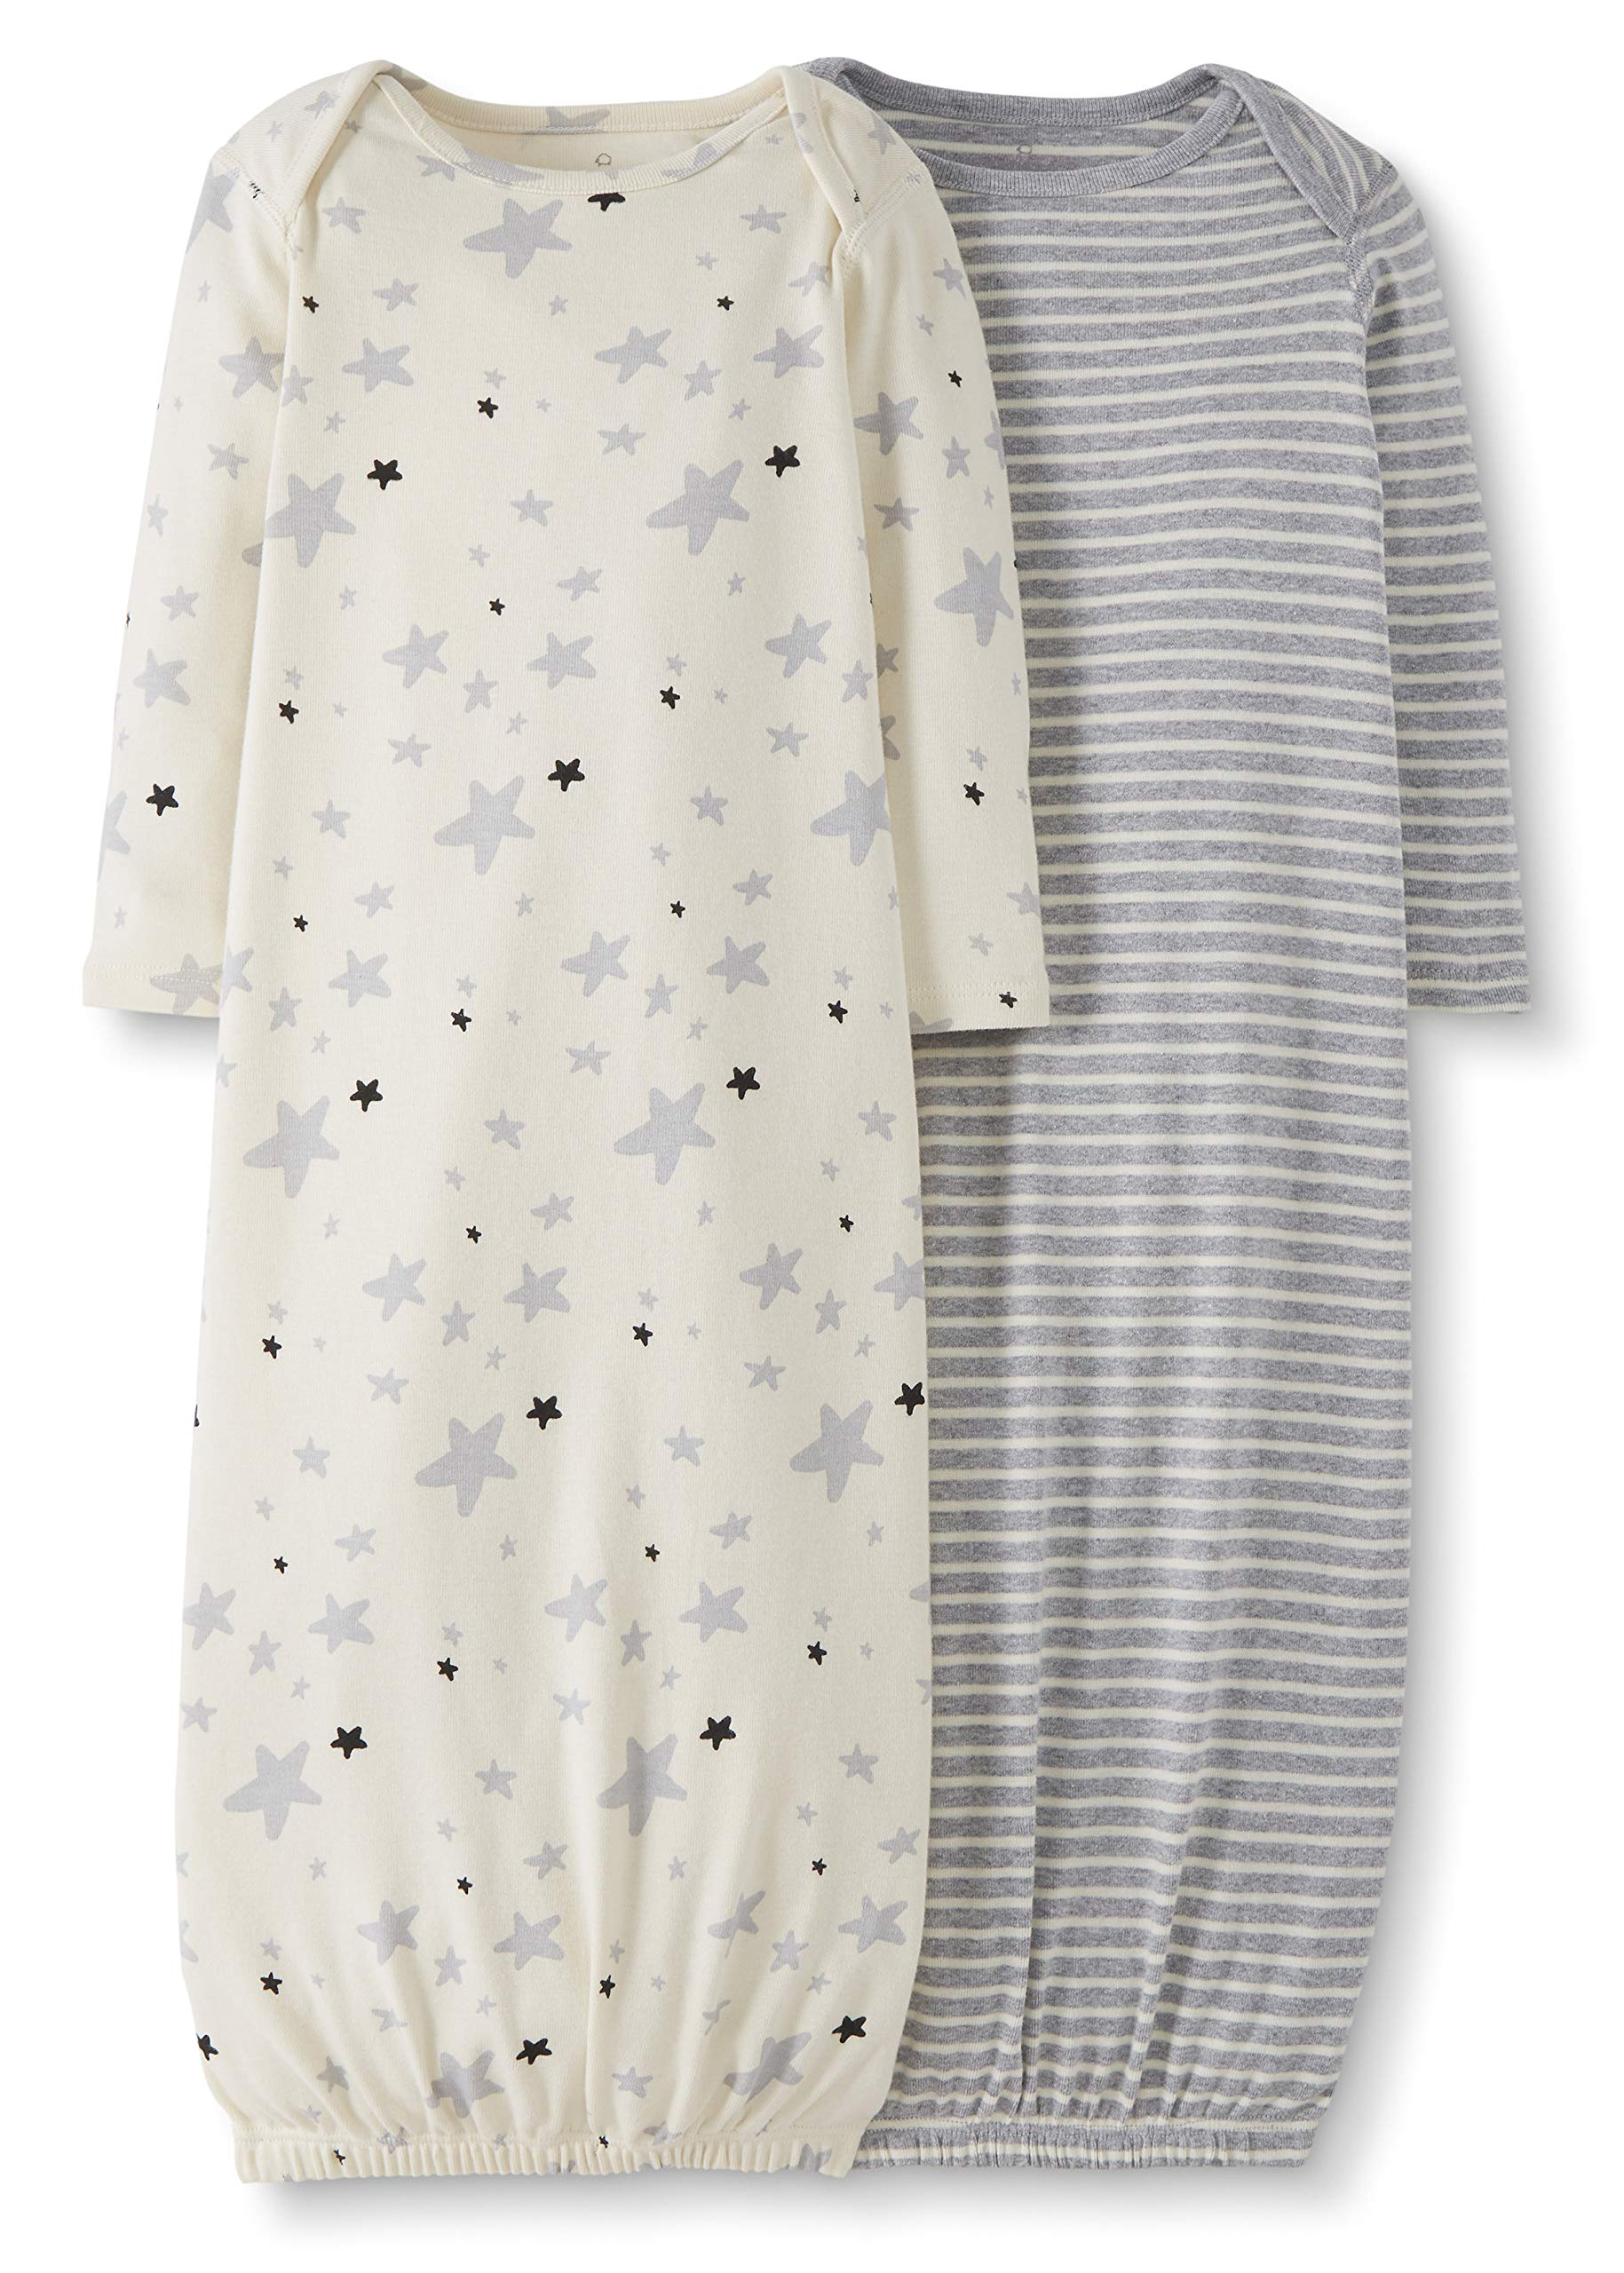 Moon and Back by Hanna Andersson Baby 2-Pack Organic Sleeper Gown, Gray, 3-6 months